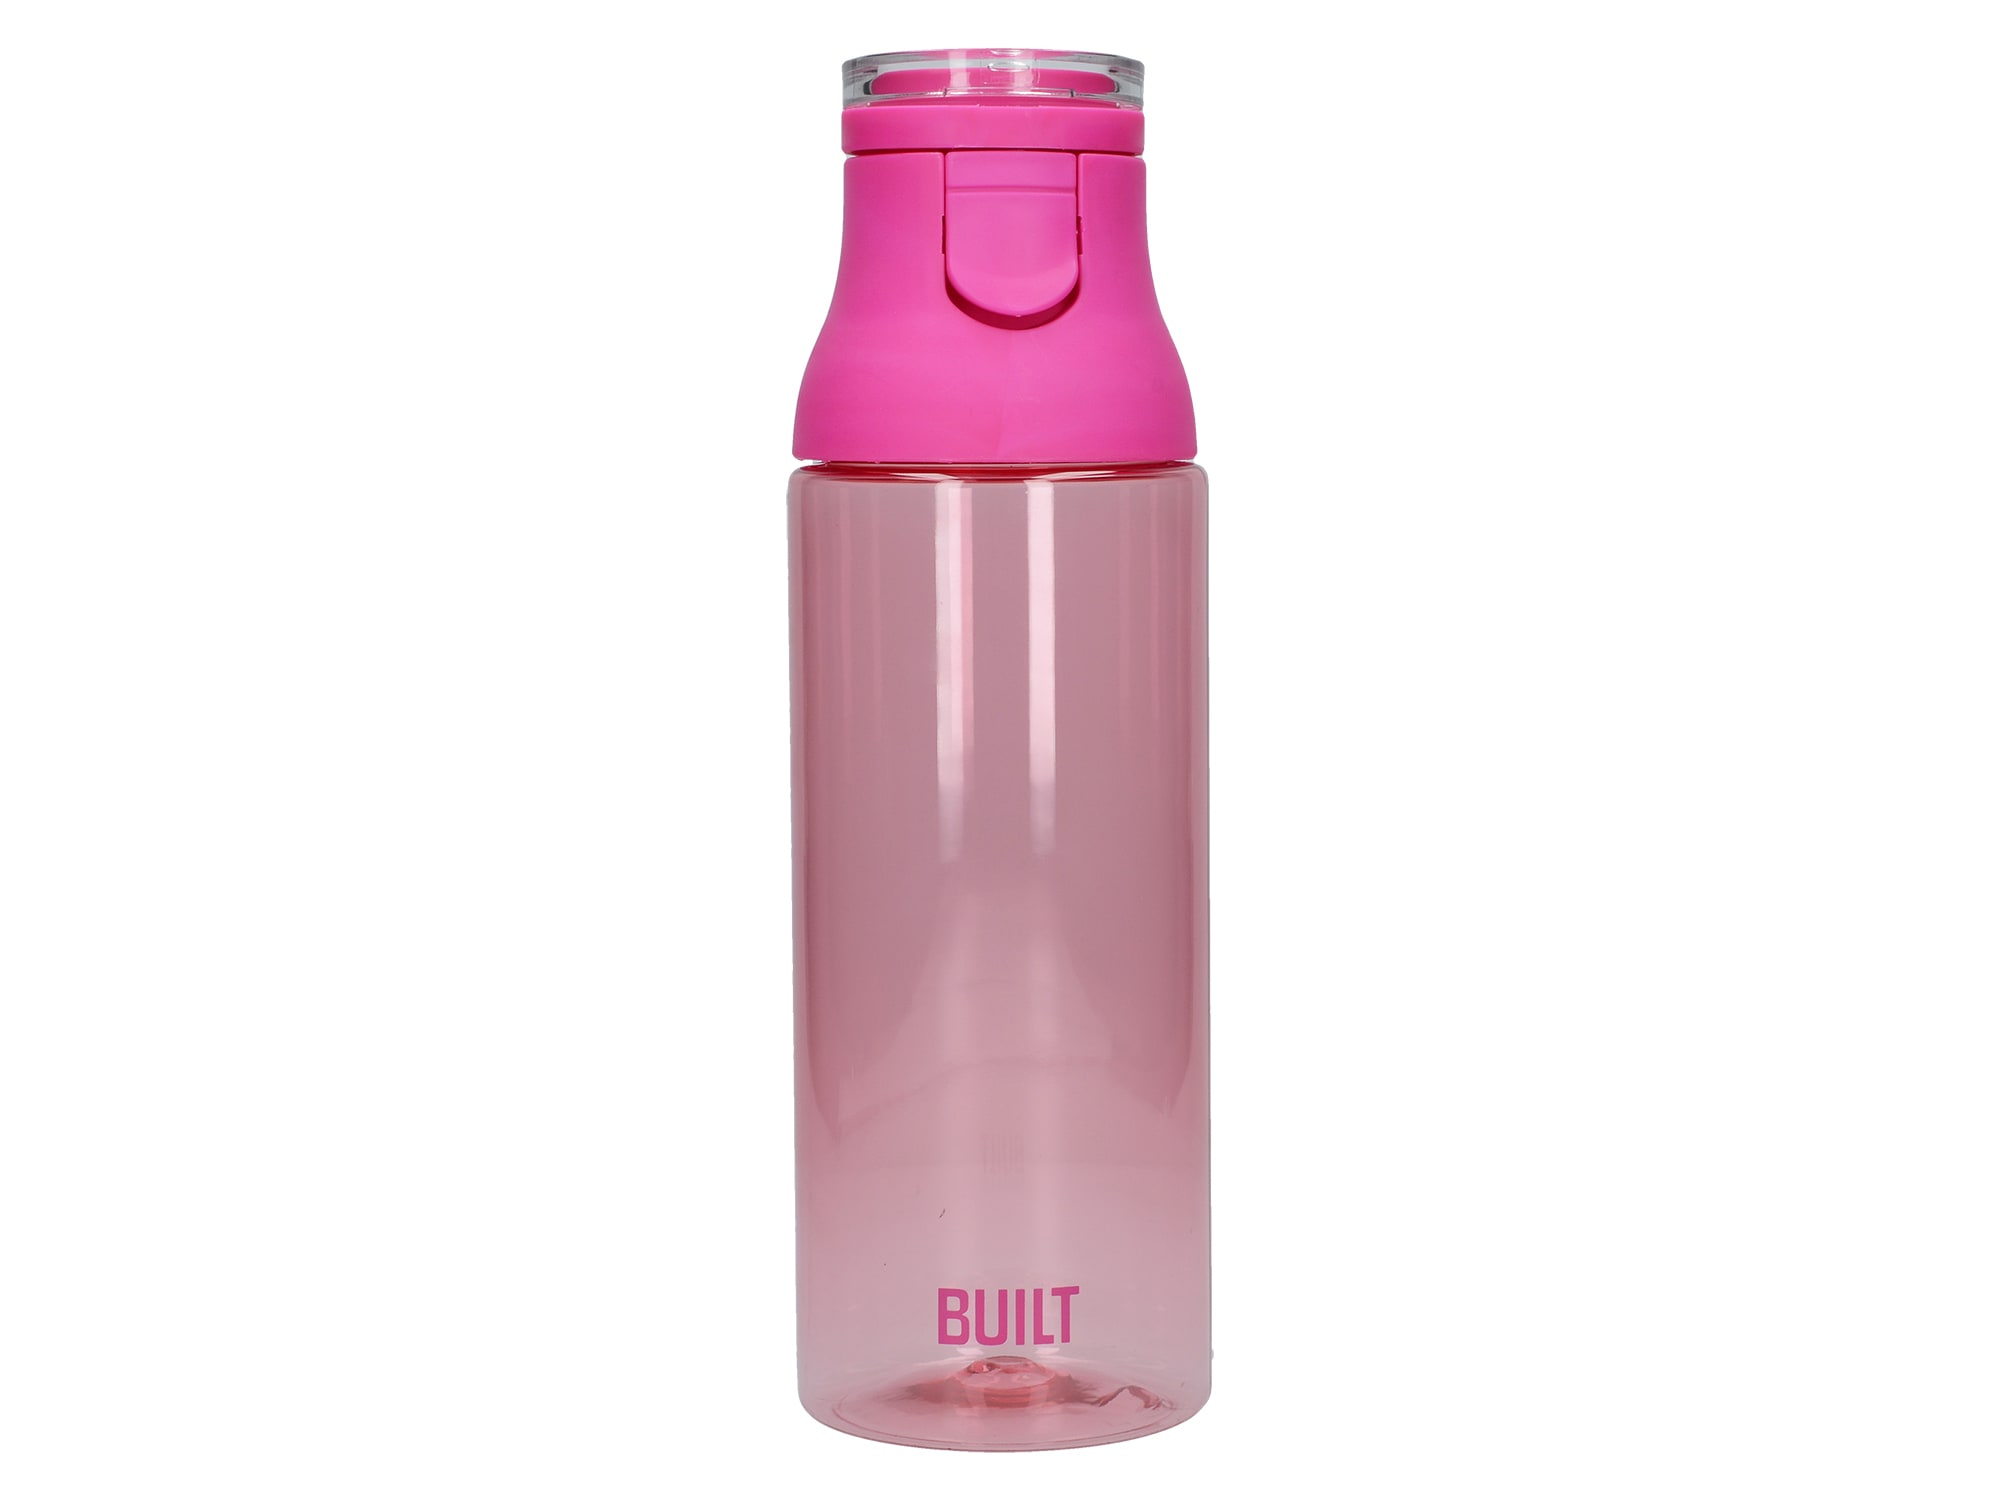 Built 25Oz Flip Top Single Walled Plastic Bottle Pink